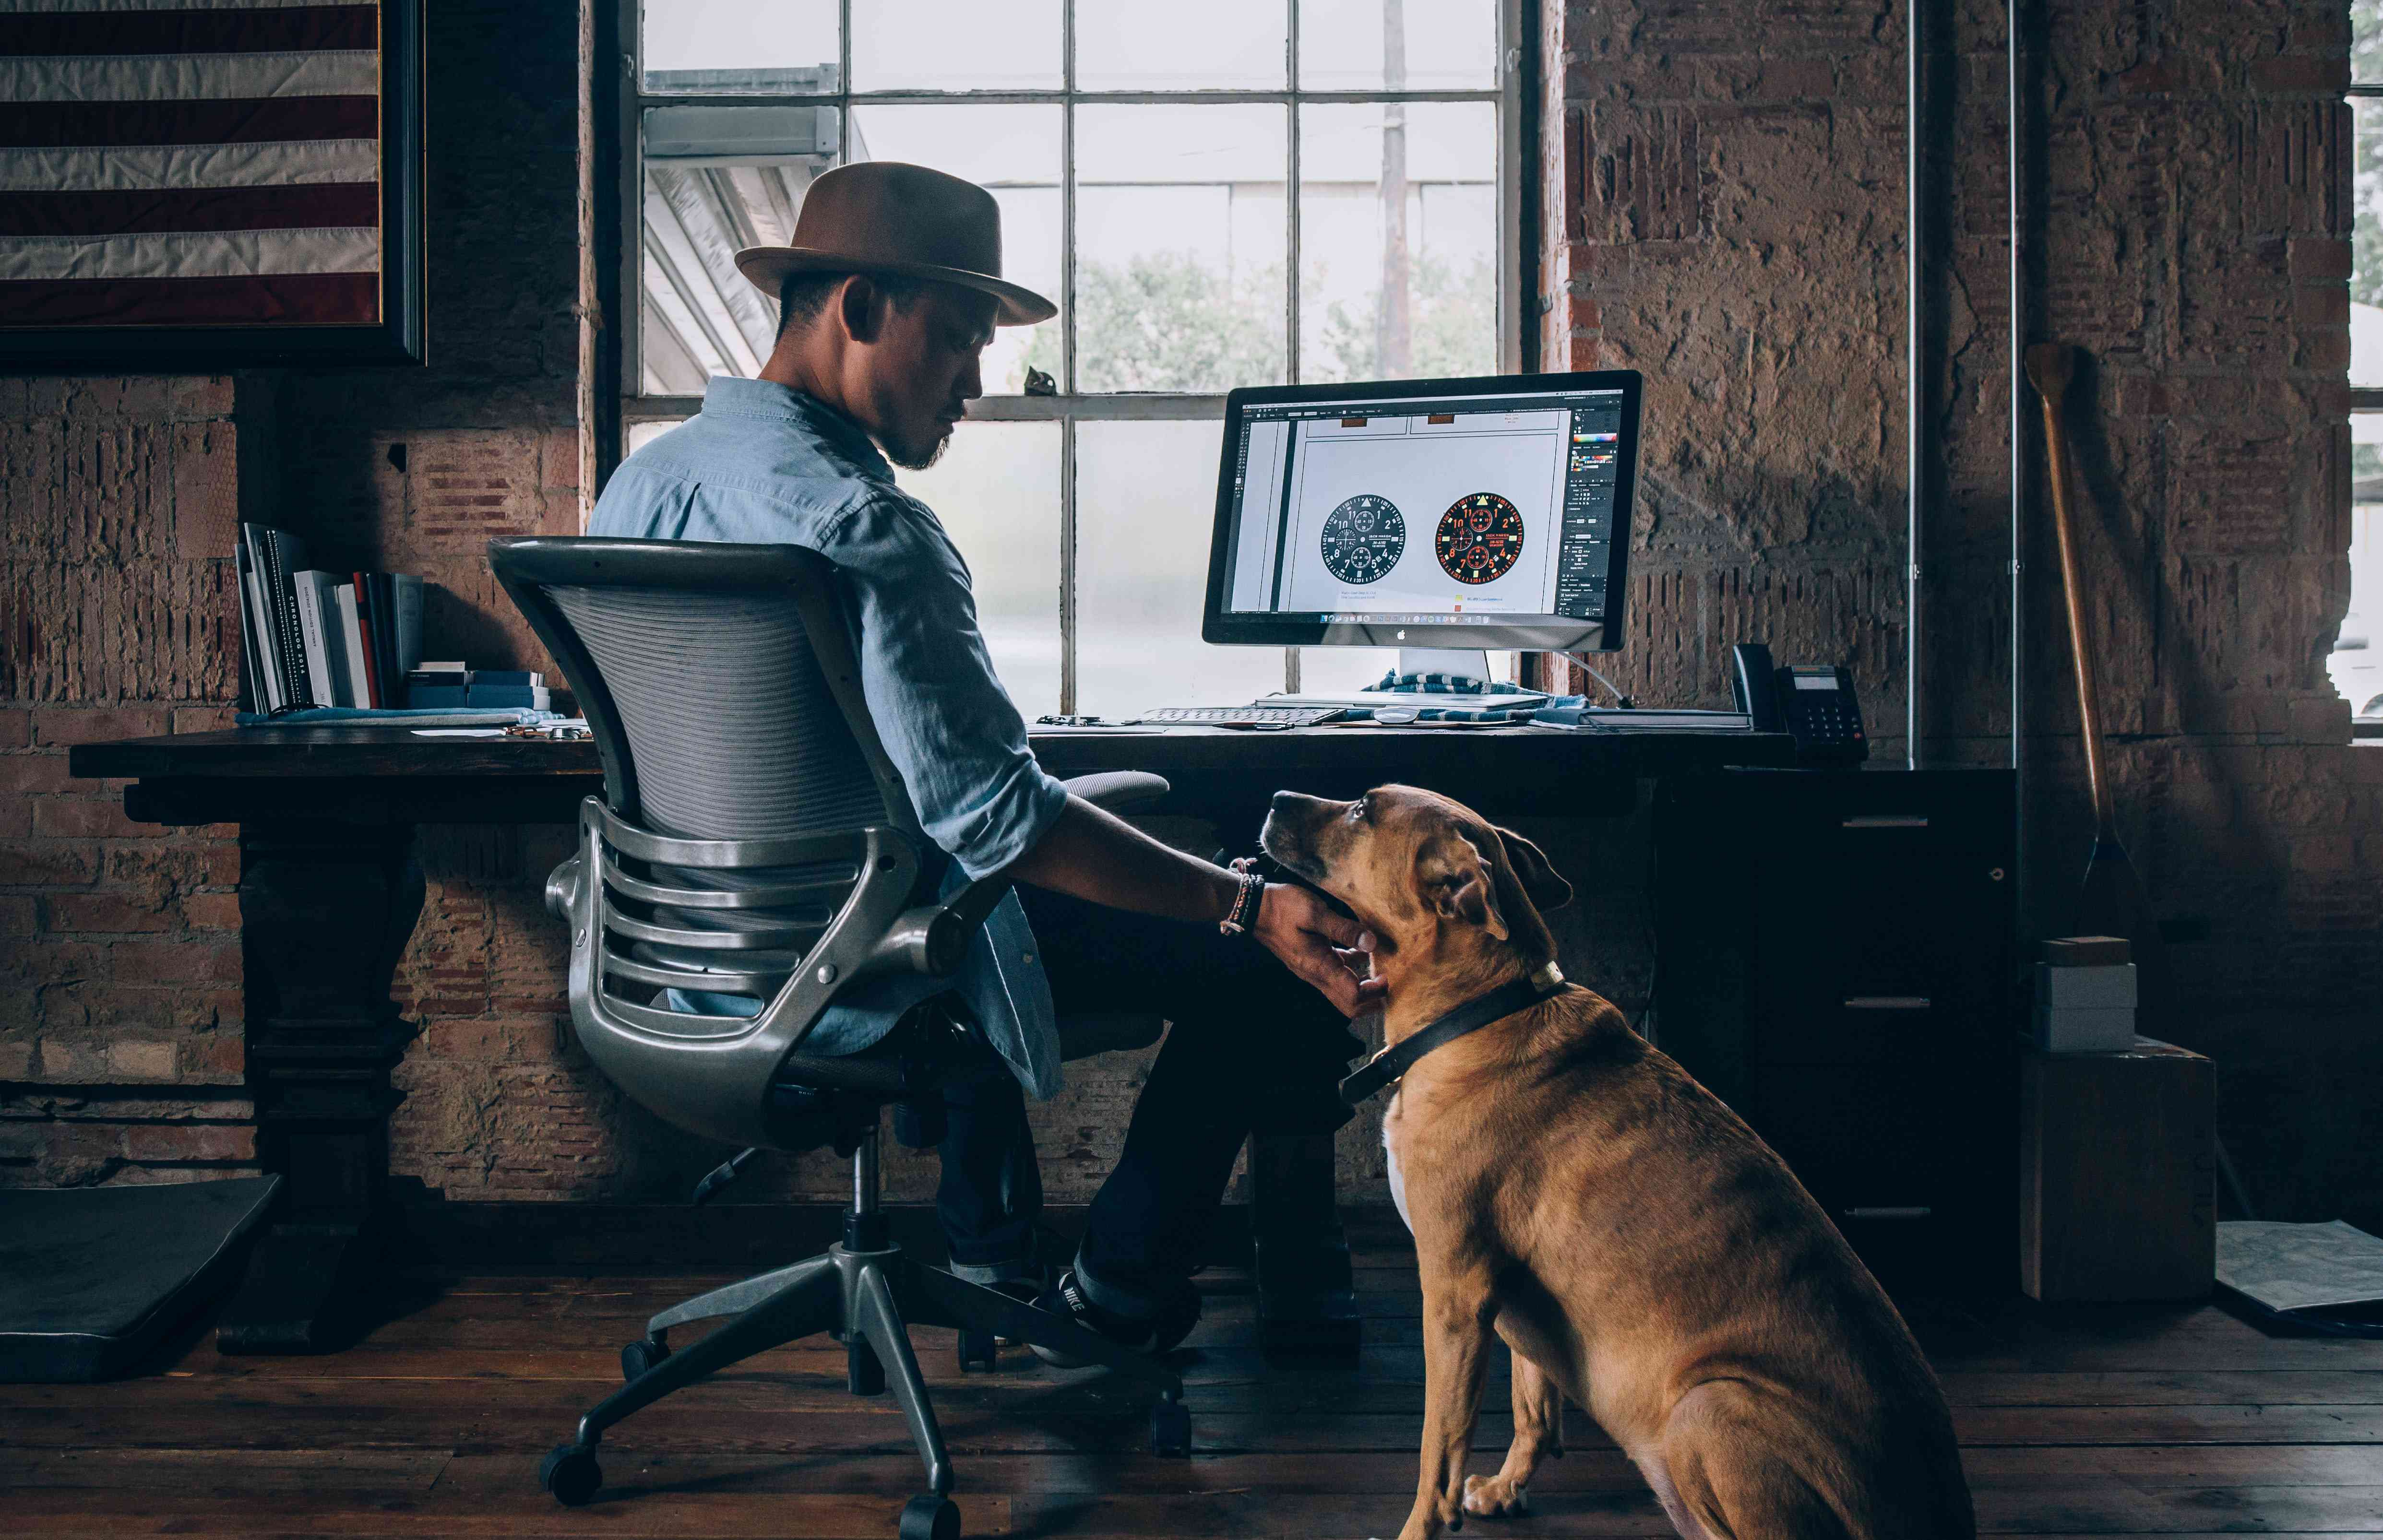 Someone sitting in a desk chair in a home office, petting a dog.